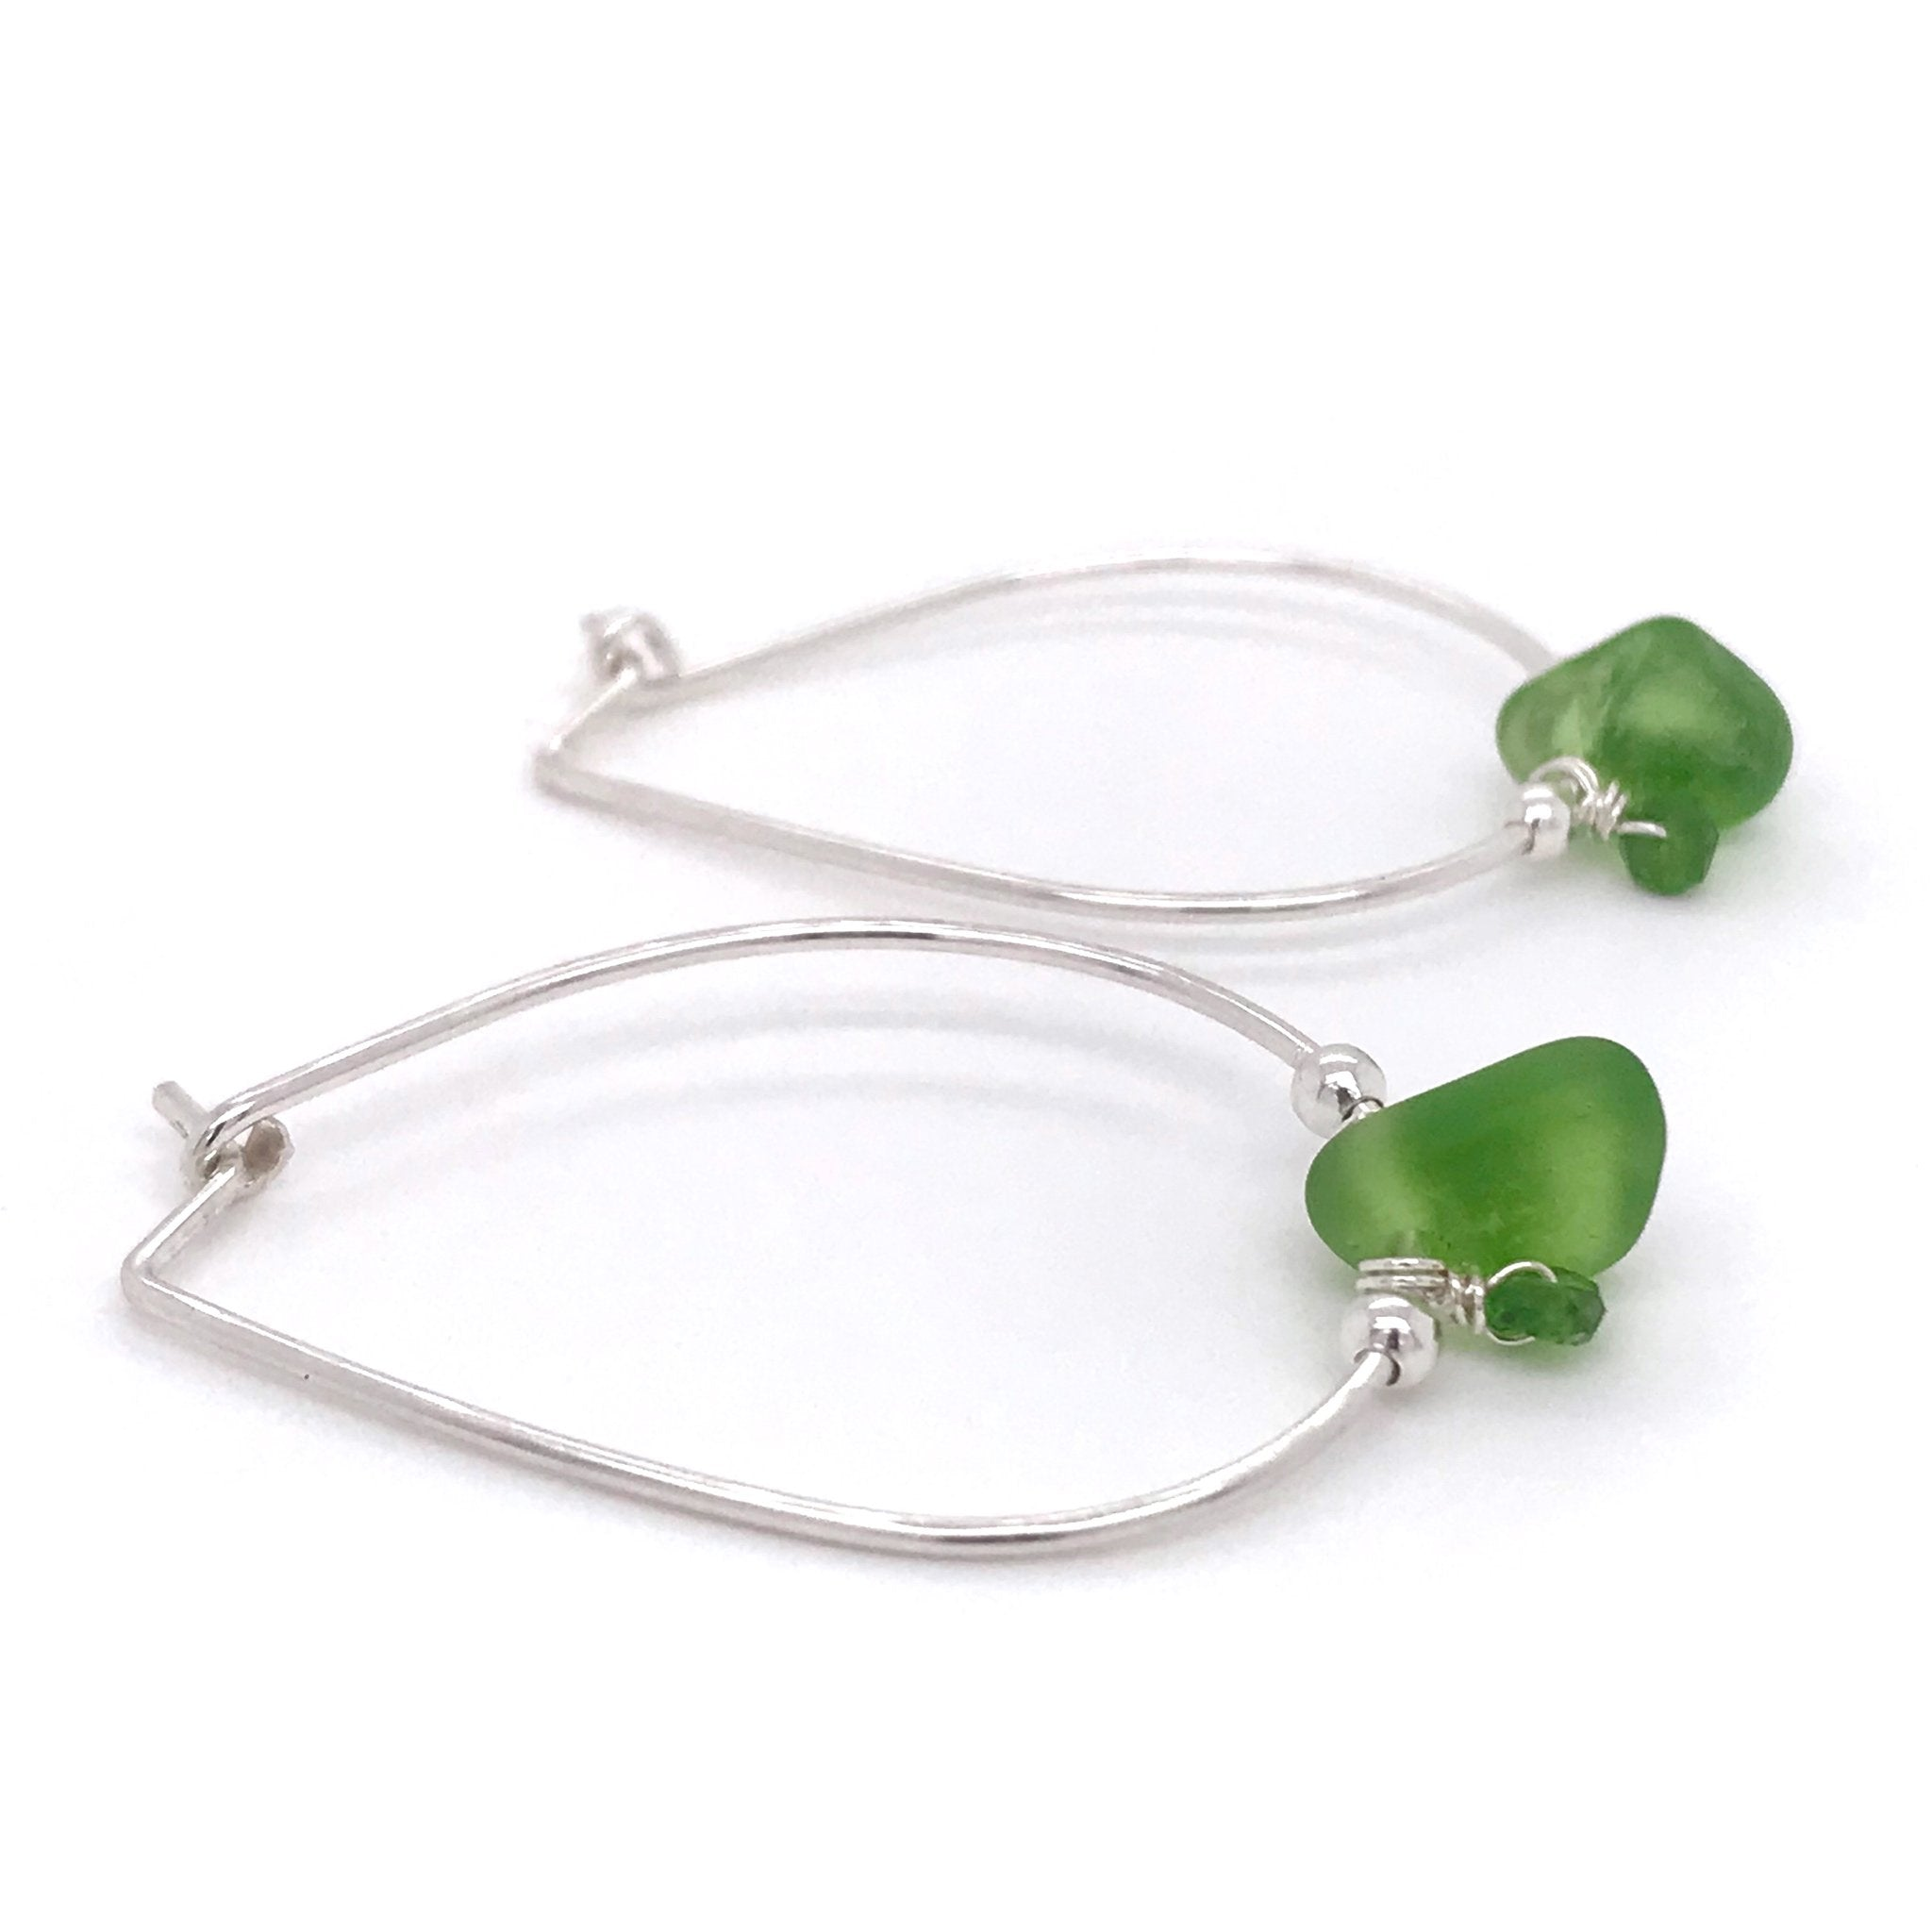 lime green sea glass and tsavorite stones on silver hoop earrings by kriket broadhurst jewellery